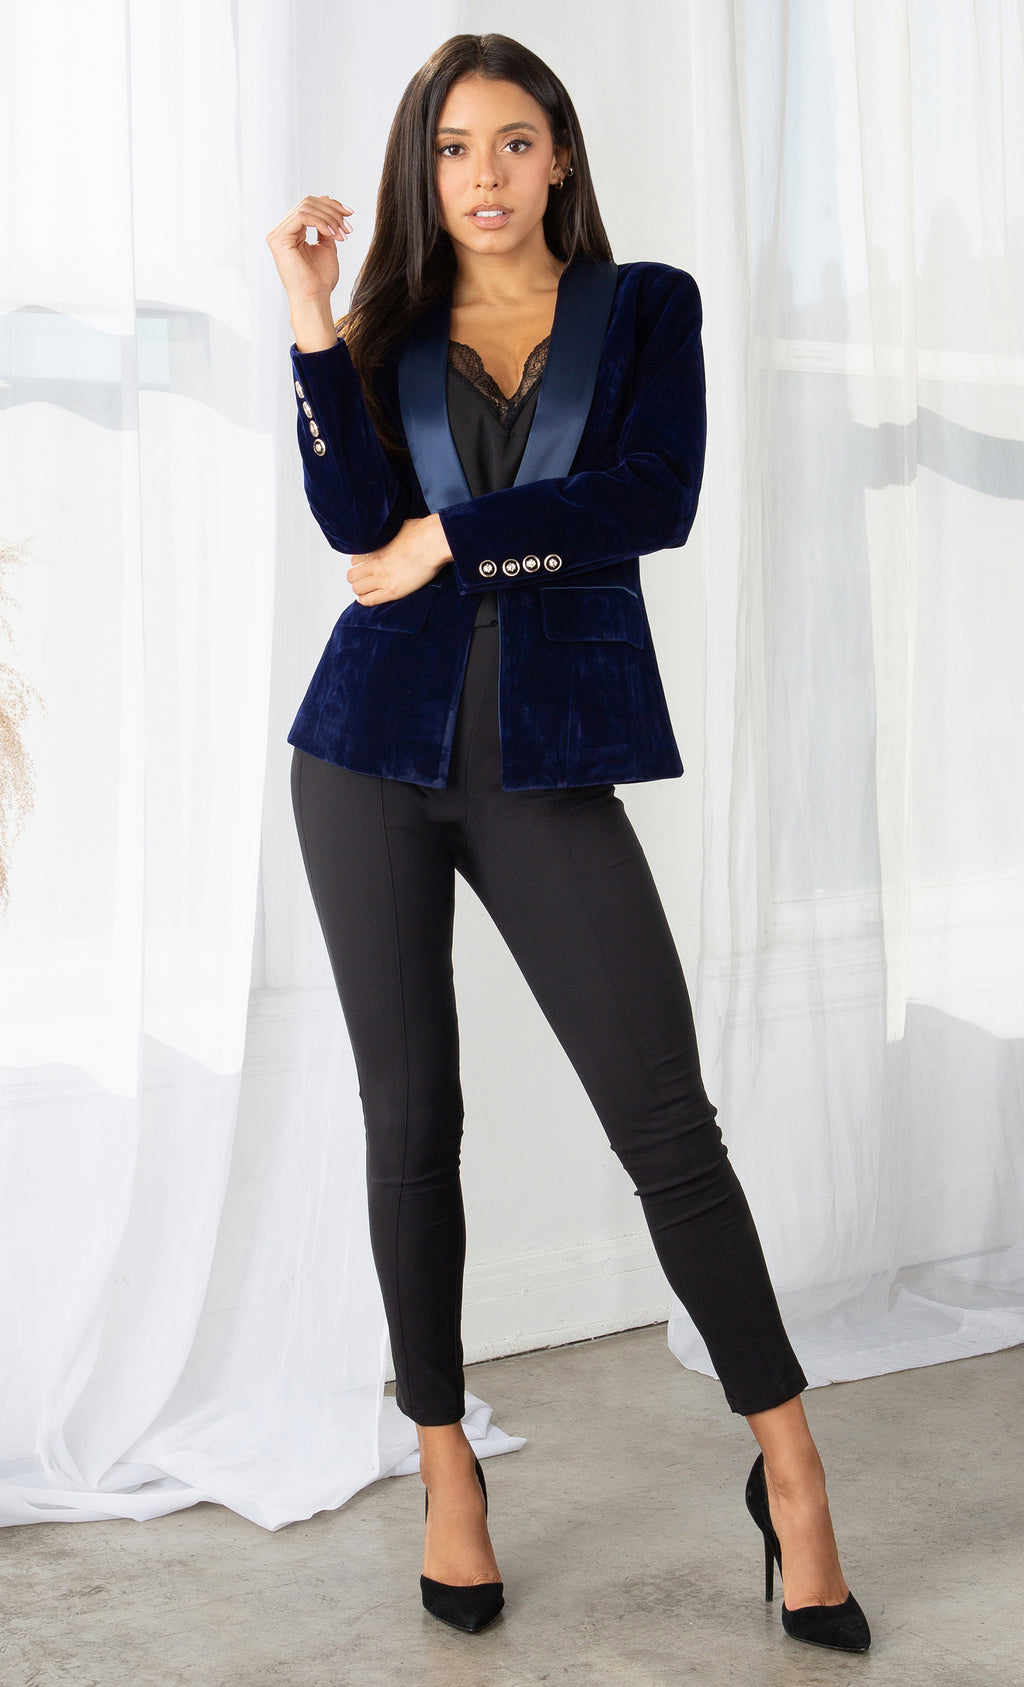 I Got Clout Navy Blue Velvet Tuxedo Satin Long Sleeve V Neck Button Blazer Jacket Outerwear